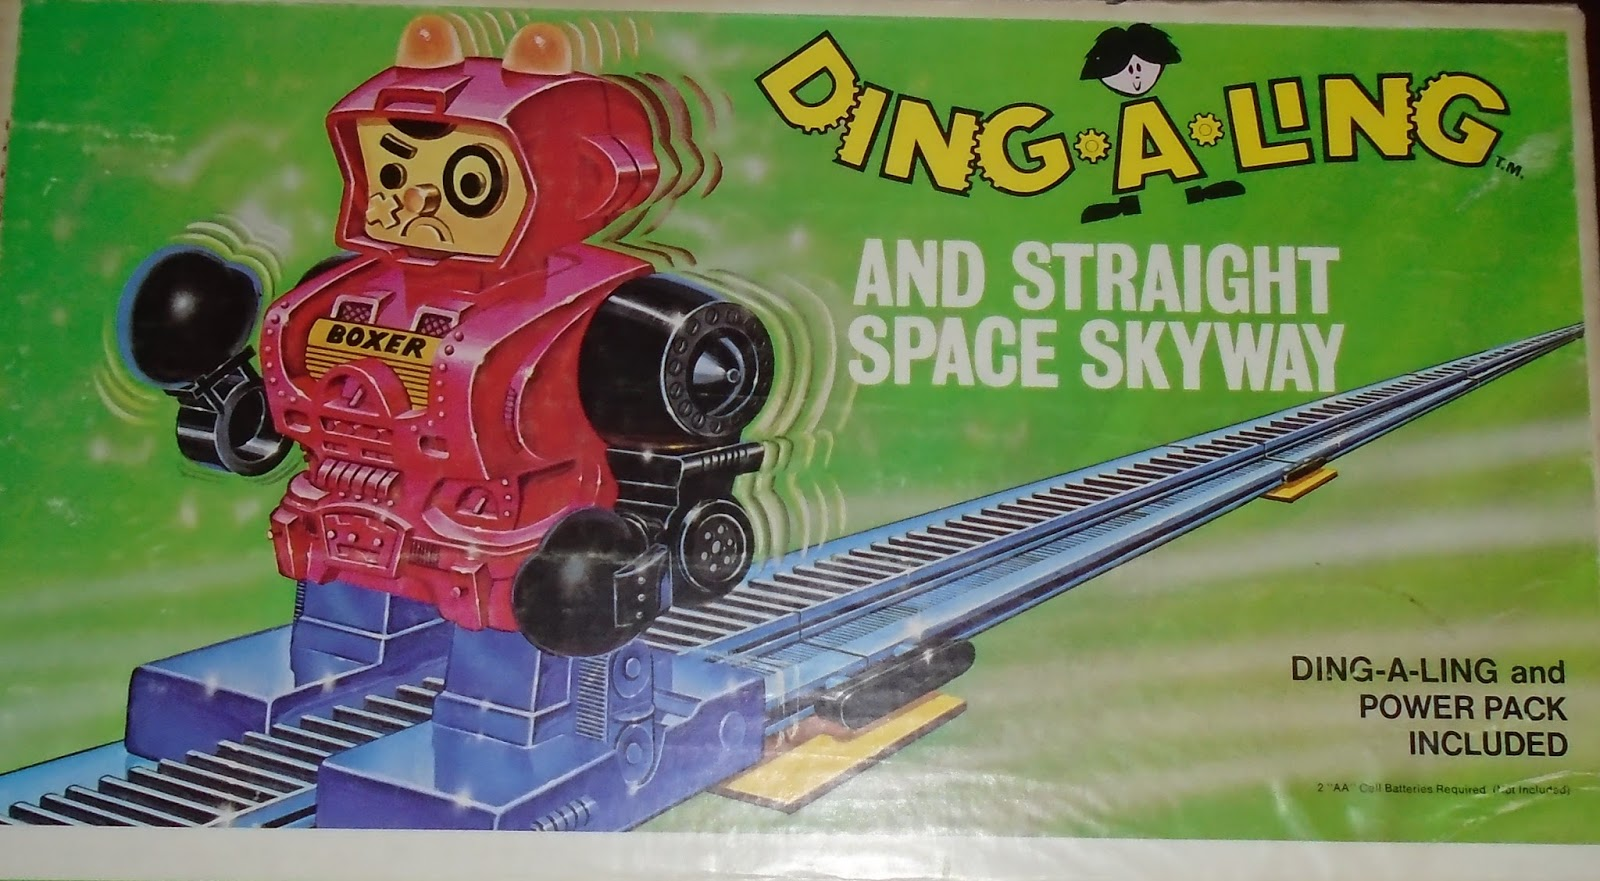 memory bank ding a ling robots topper 1970